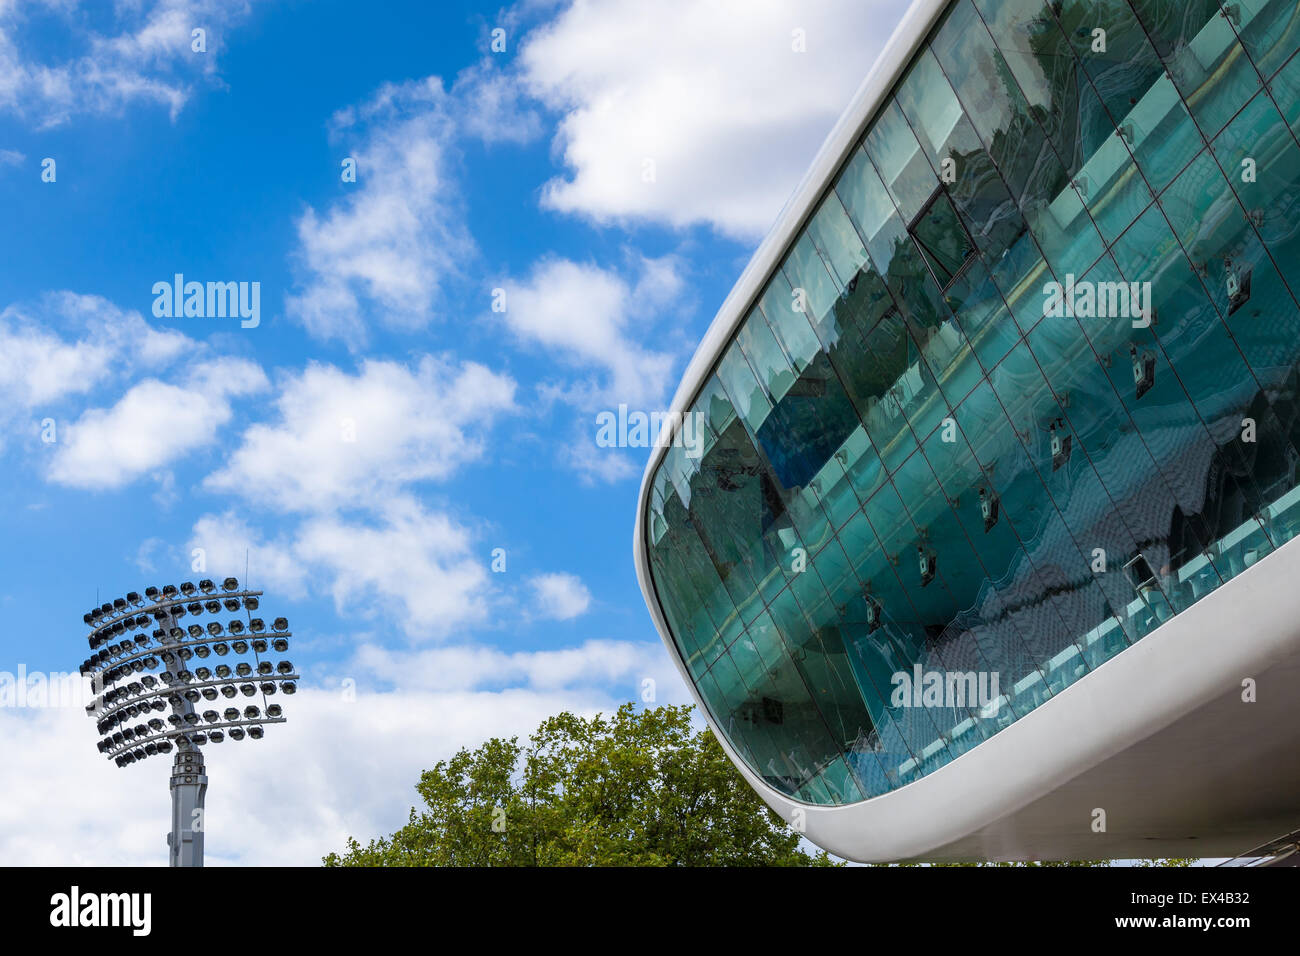 View of Media Centre and floodlight at the Nursery End of Lord's Cricket Ground - London, UK, 27 June 2015 - Stock Image